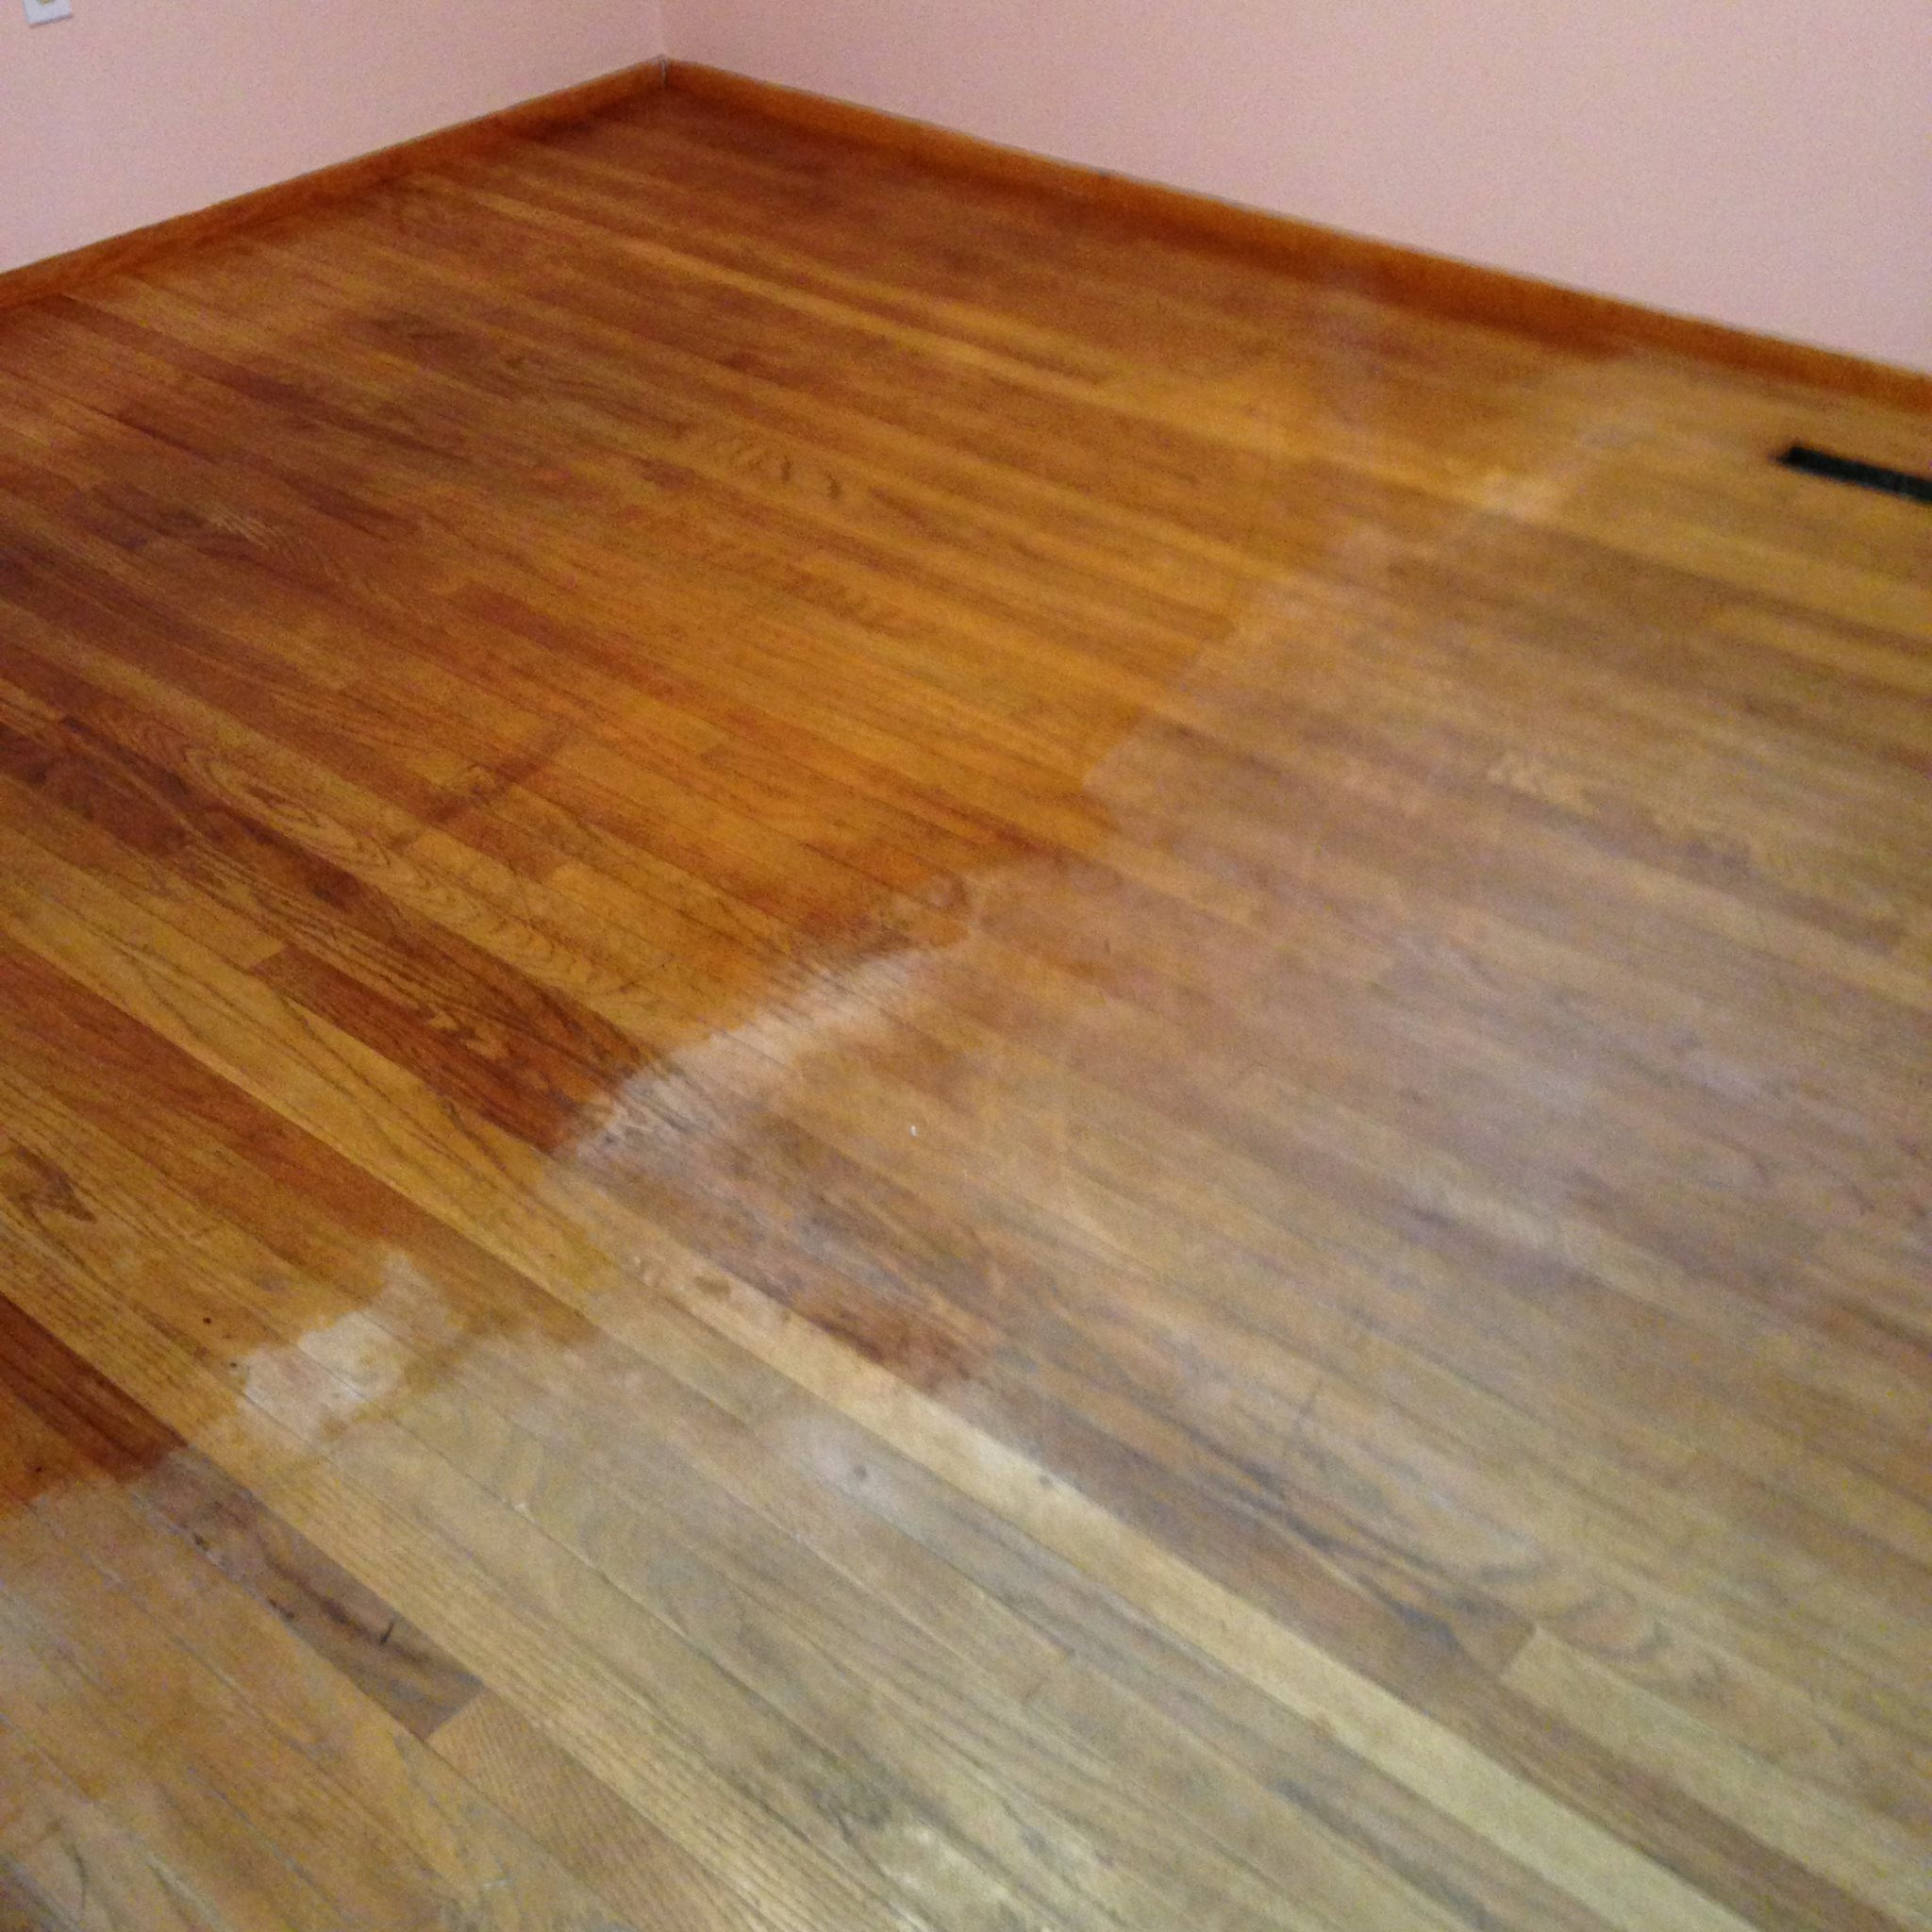 Refinishing Hardwood Floors Light to Dark Of 15 Wood Floor Hacks Every Homeowner Needs to Know In Wood Floor Hacks 15